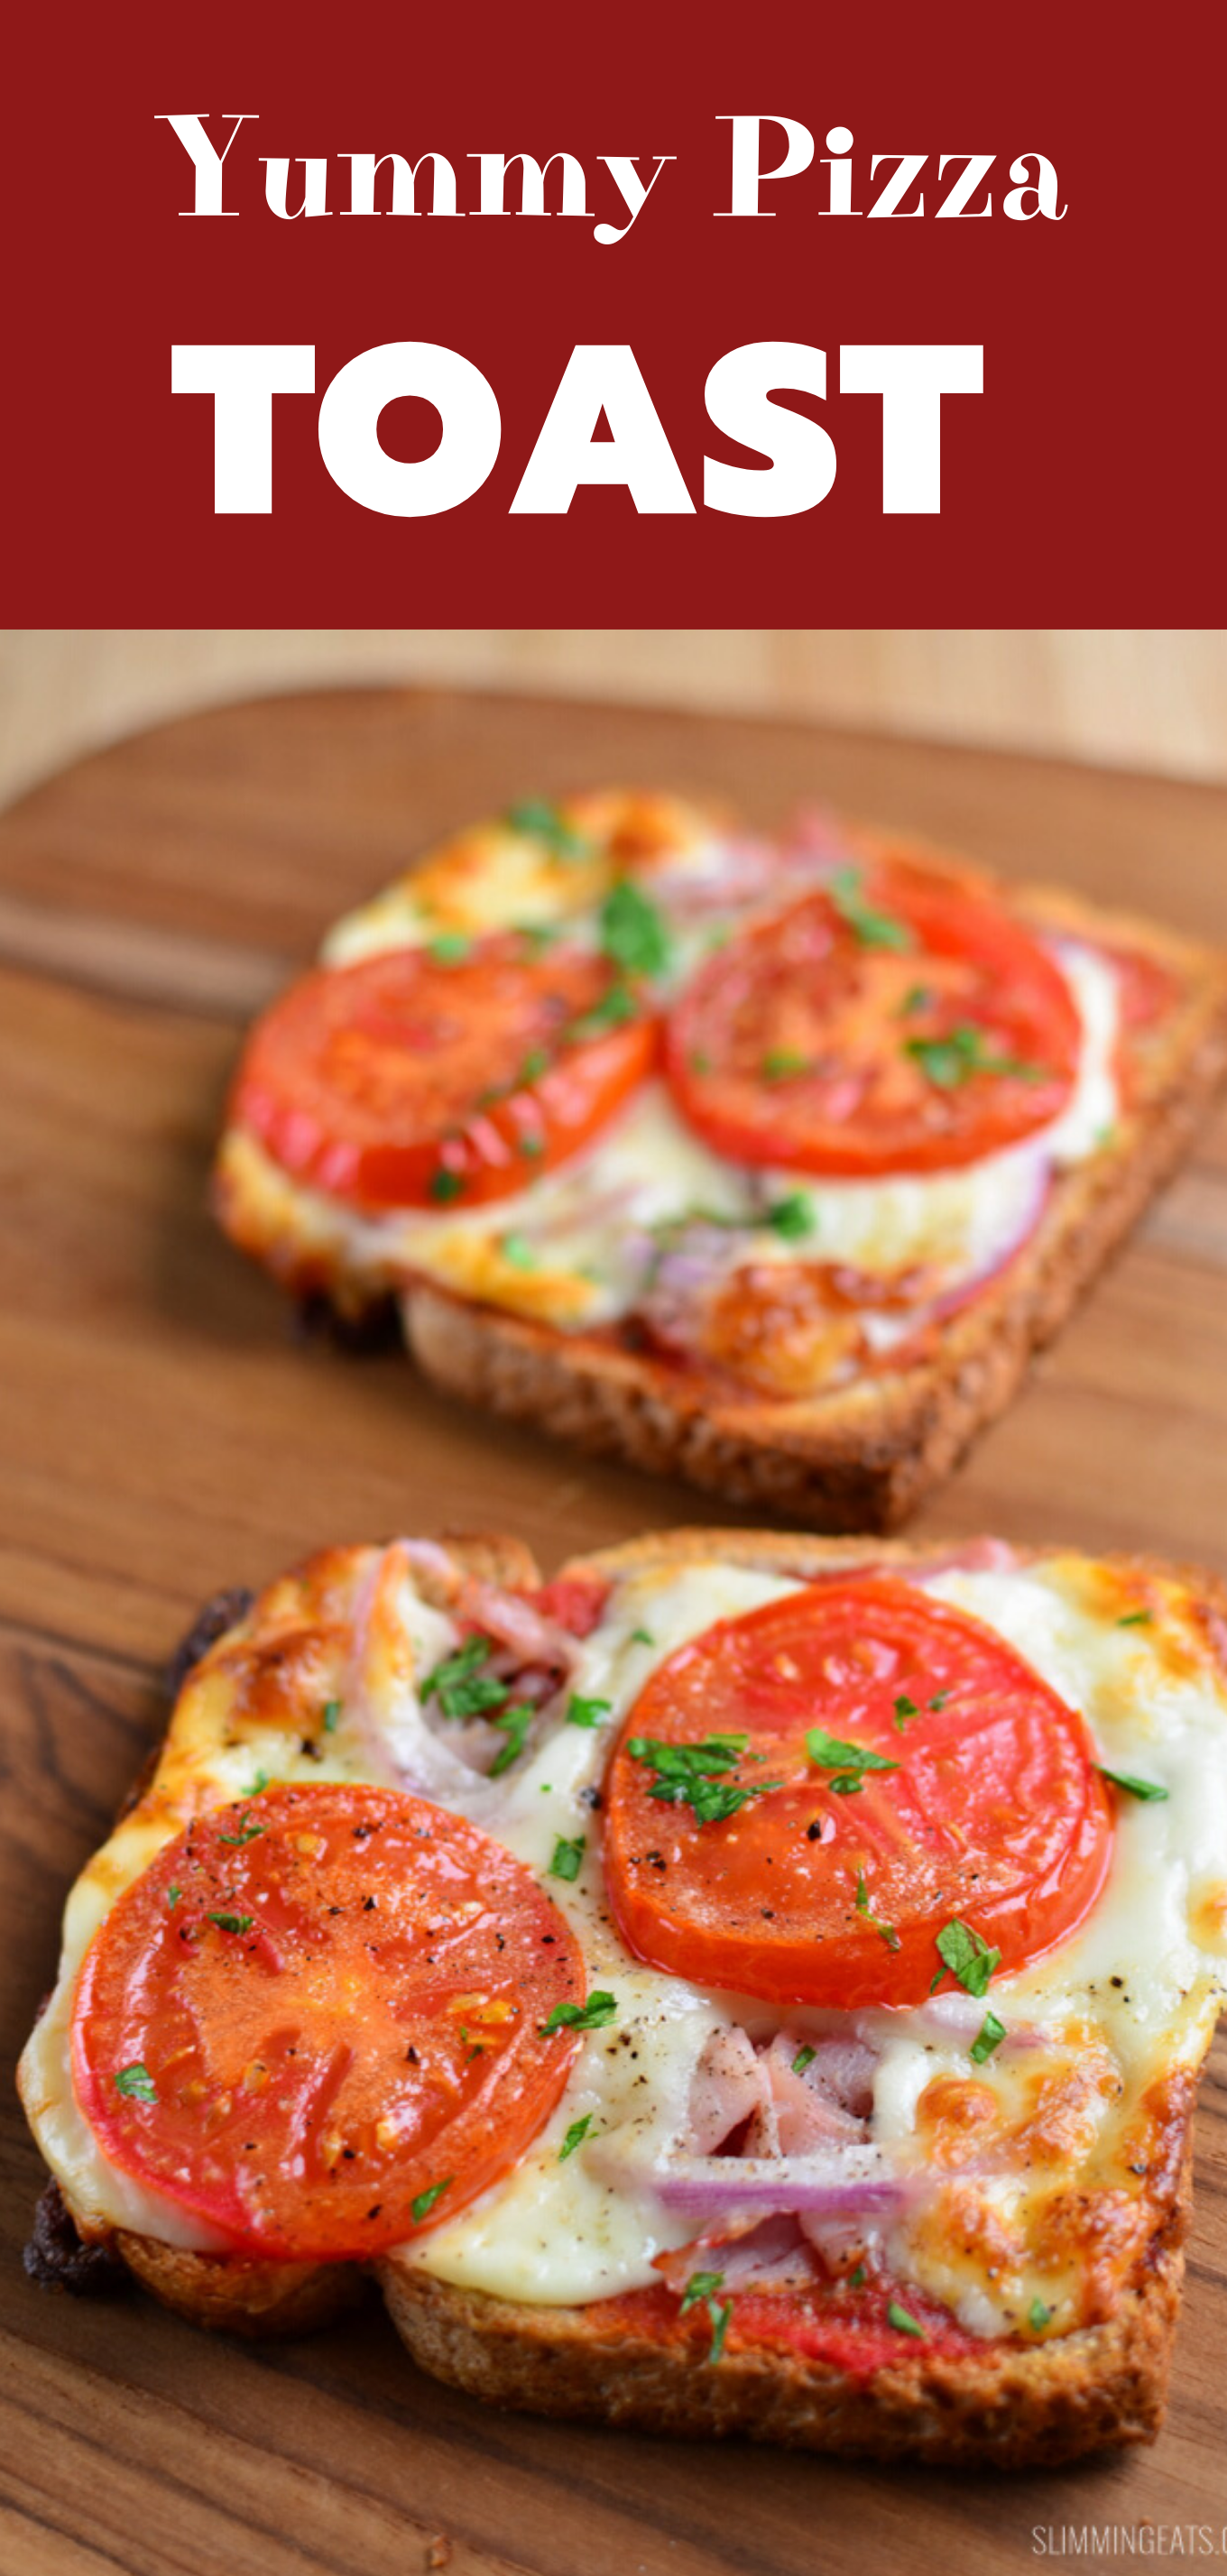 yummy pizza toasts featured pin image